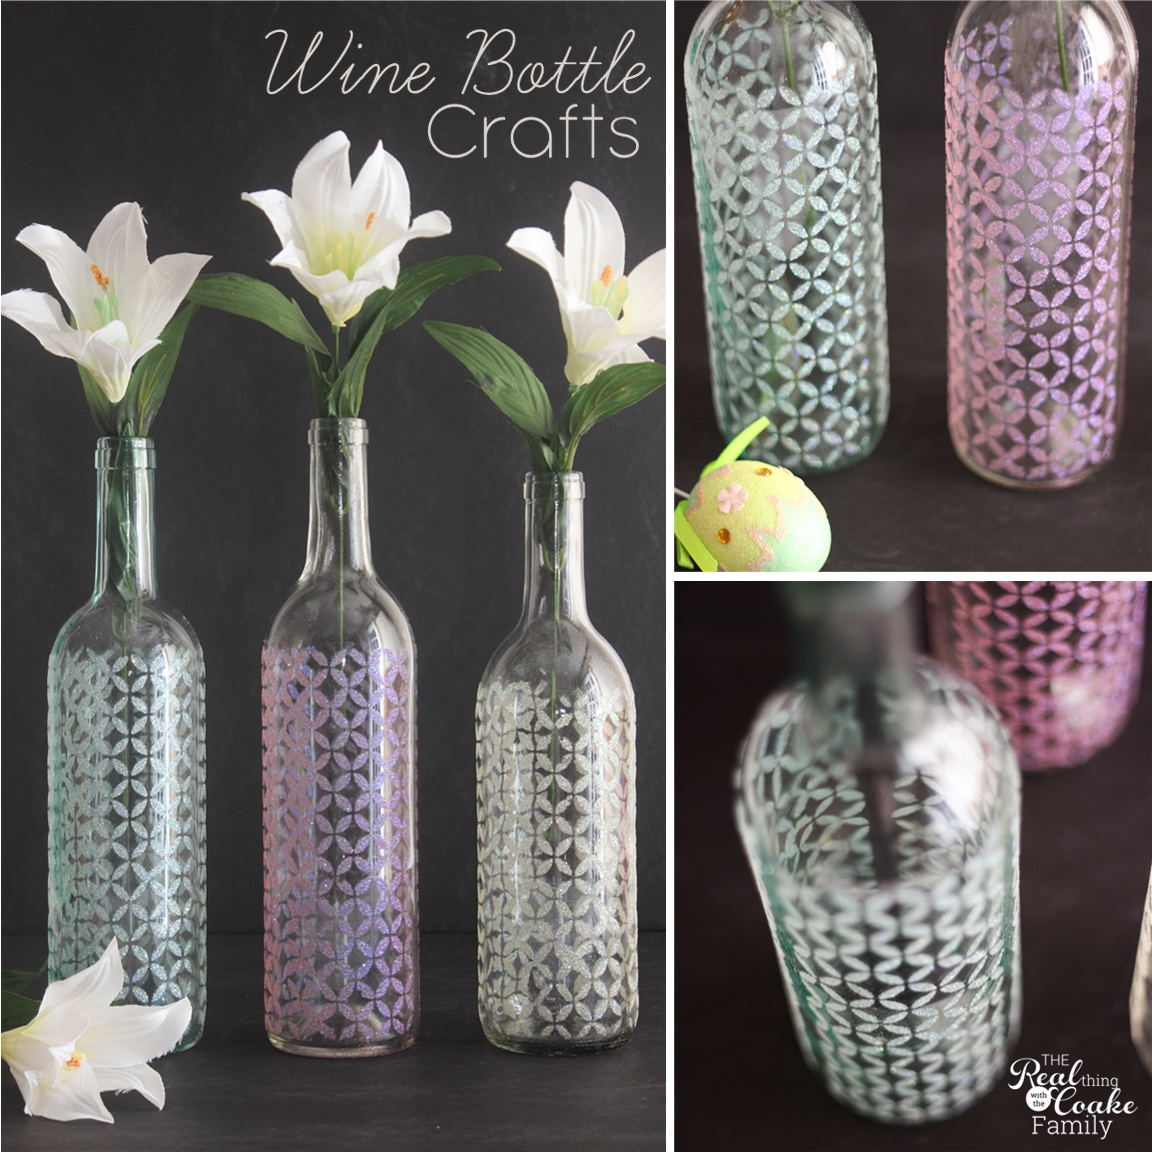 Wine bottle crafts are so fun. These are beautiful vases made with Mod Podge, stencils and glitter. #WineBottleCrafts #WineBottle #Crafts #ModPodge #Glitter #RealCoake